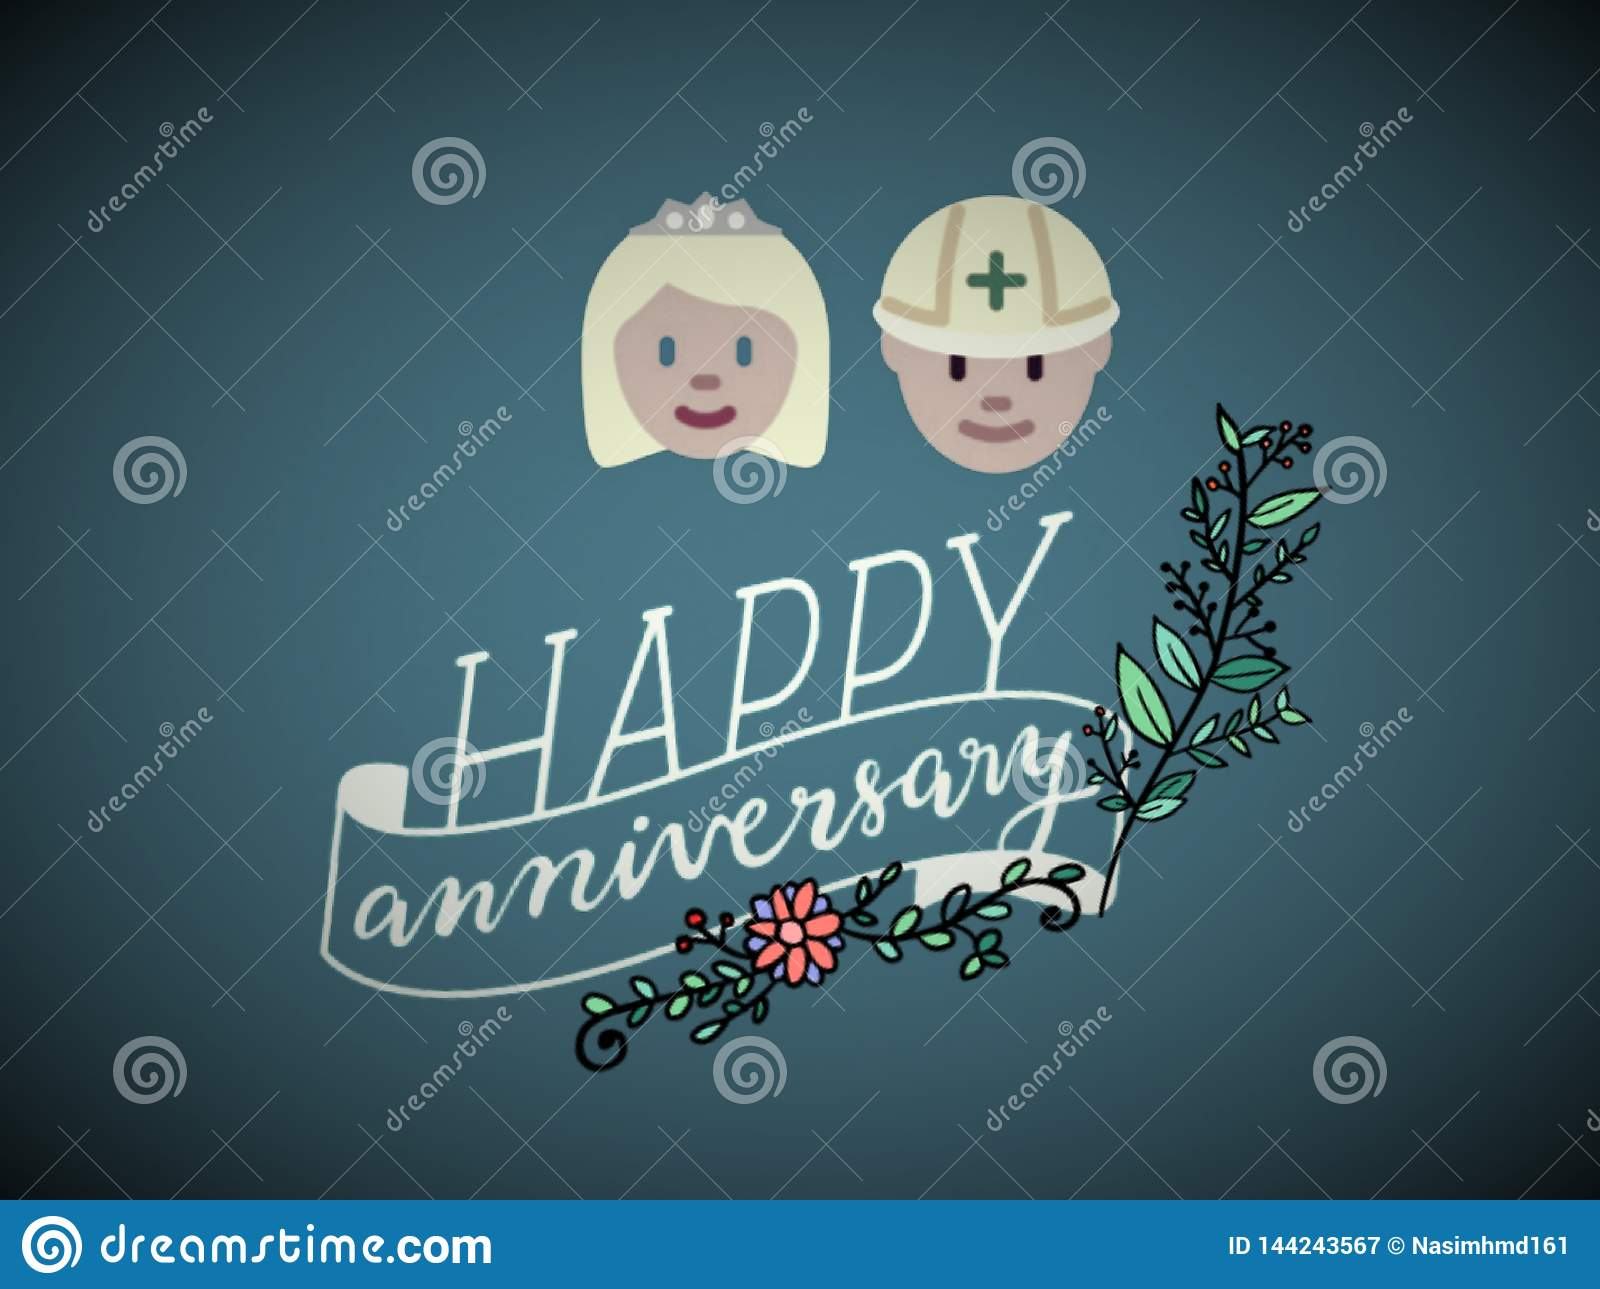 A greetings card/gift card of  happy anniversary, vector.